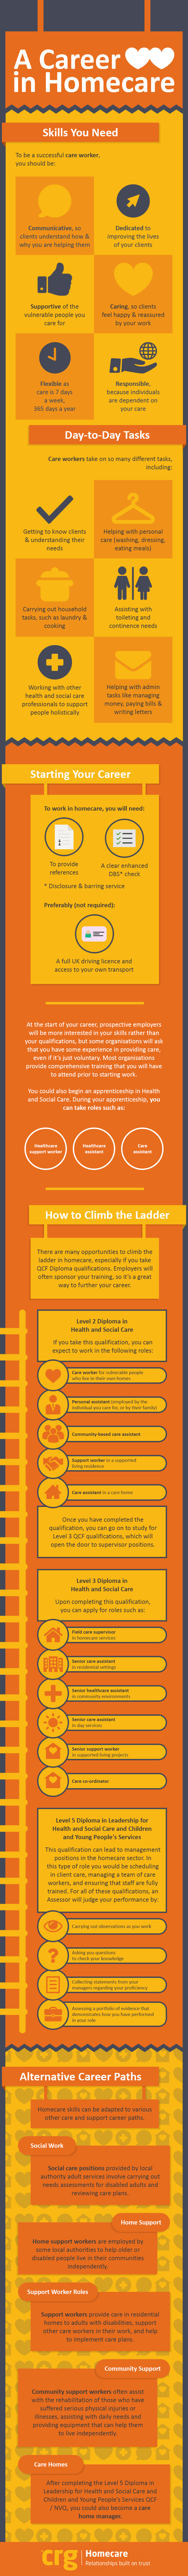 A Career in Homecare Infographic